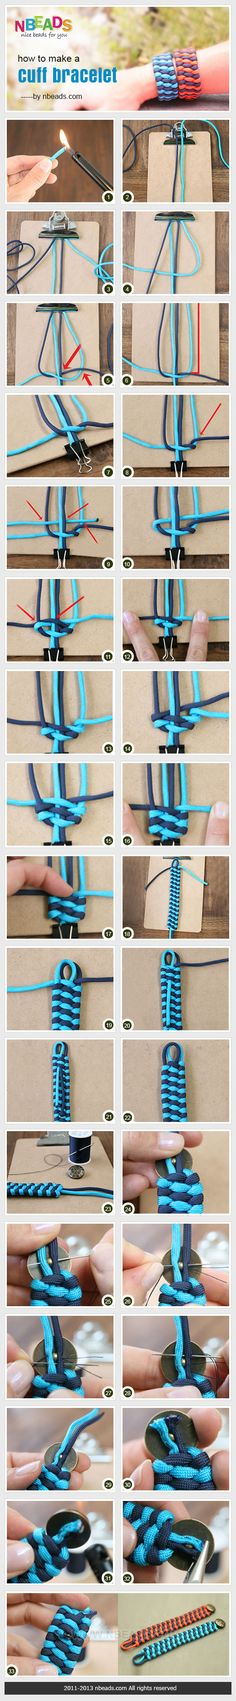 Paracord bracelet steps.  Our kids would love this summer fun activity!